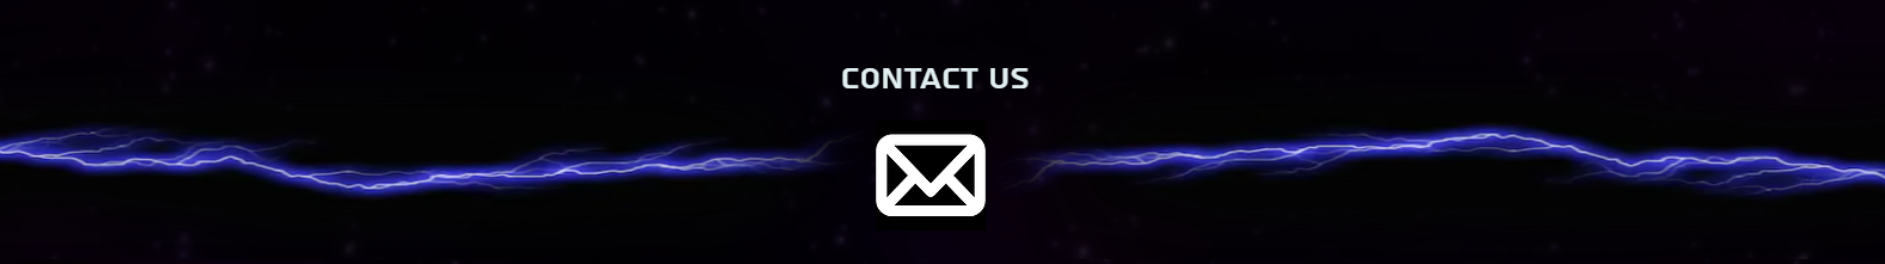 CONTACT BOARDER LINE.png